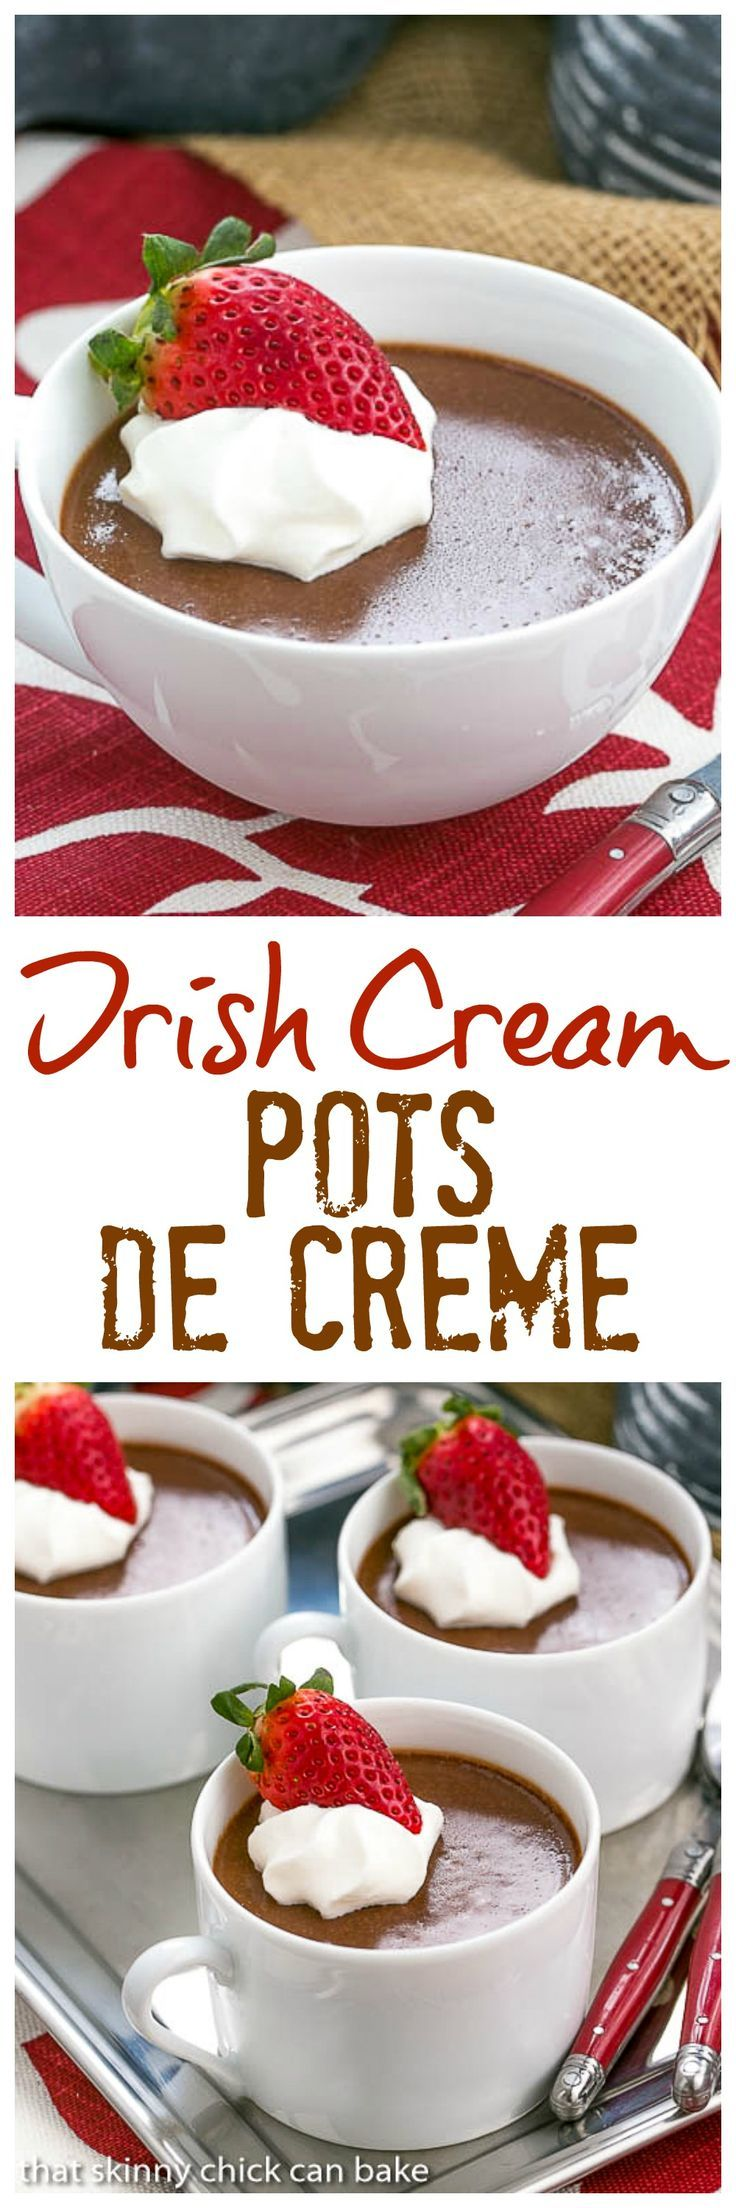 Irish Cream Pots de Creme | Rich and silky pots de creme flavored with Irish cream @lizzydo